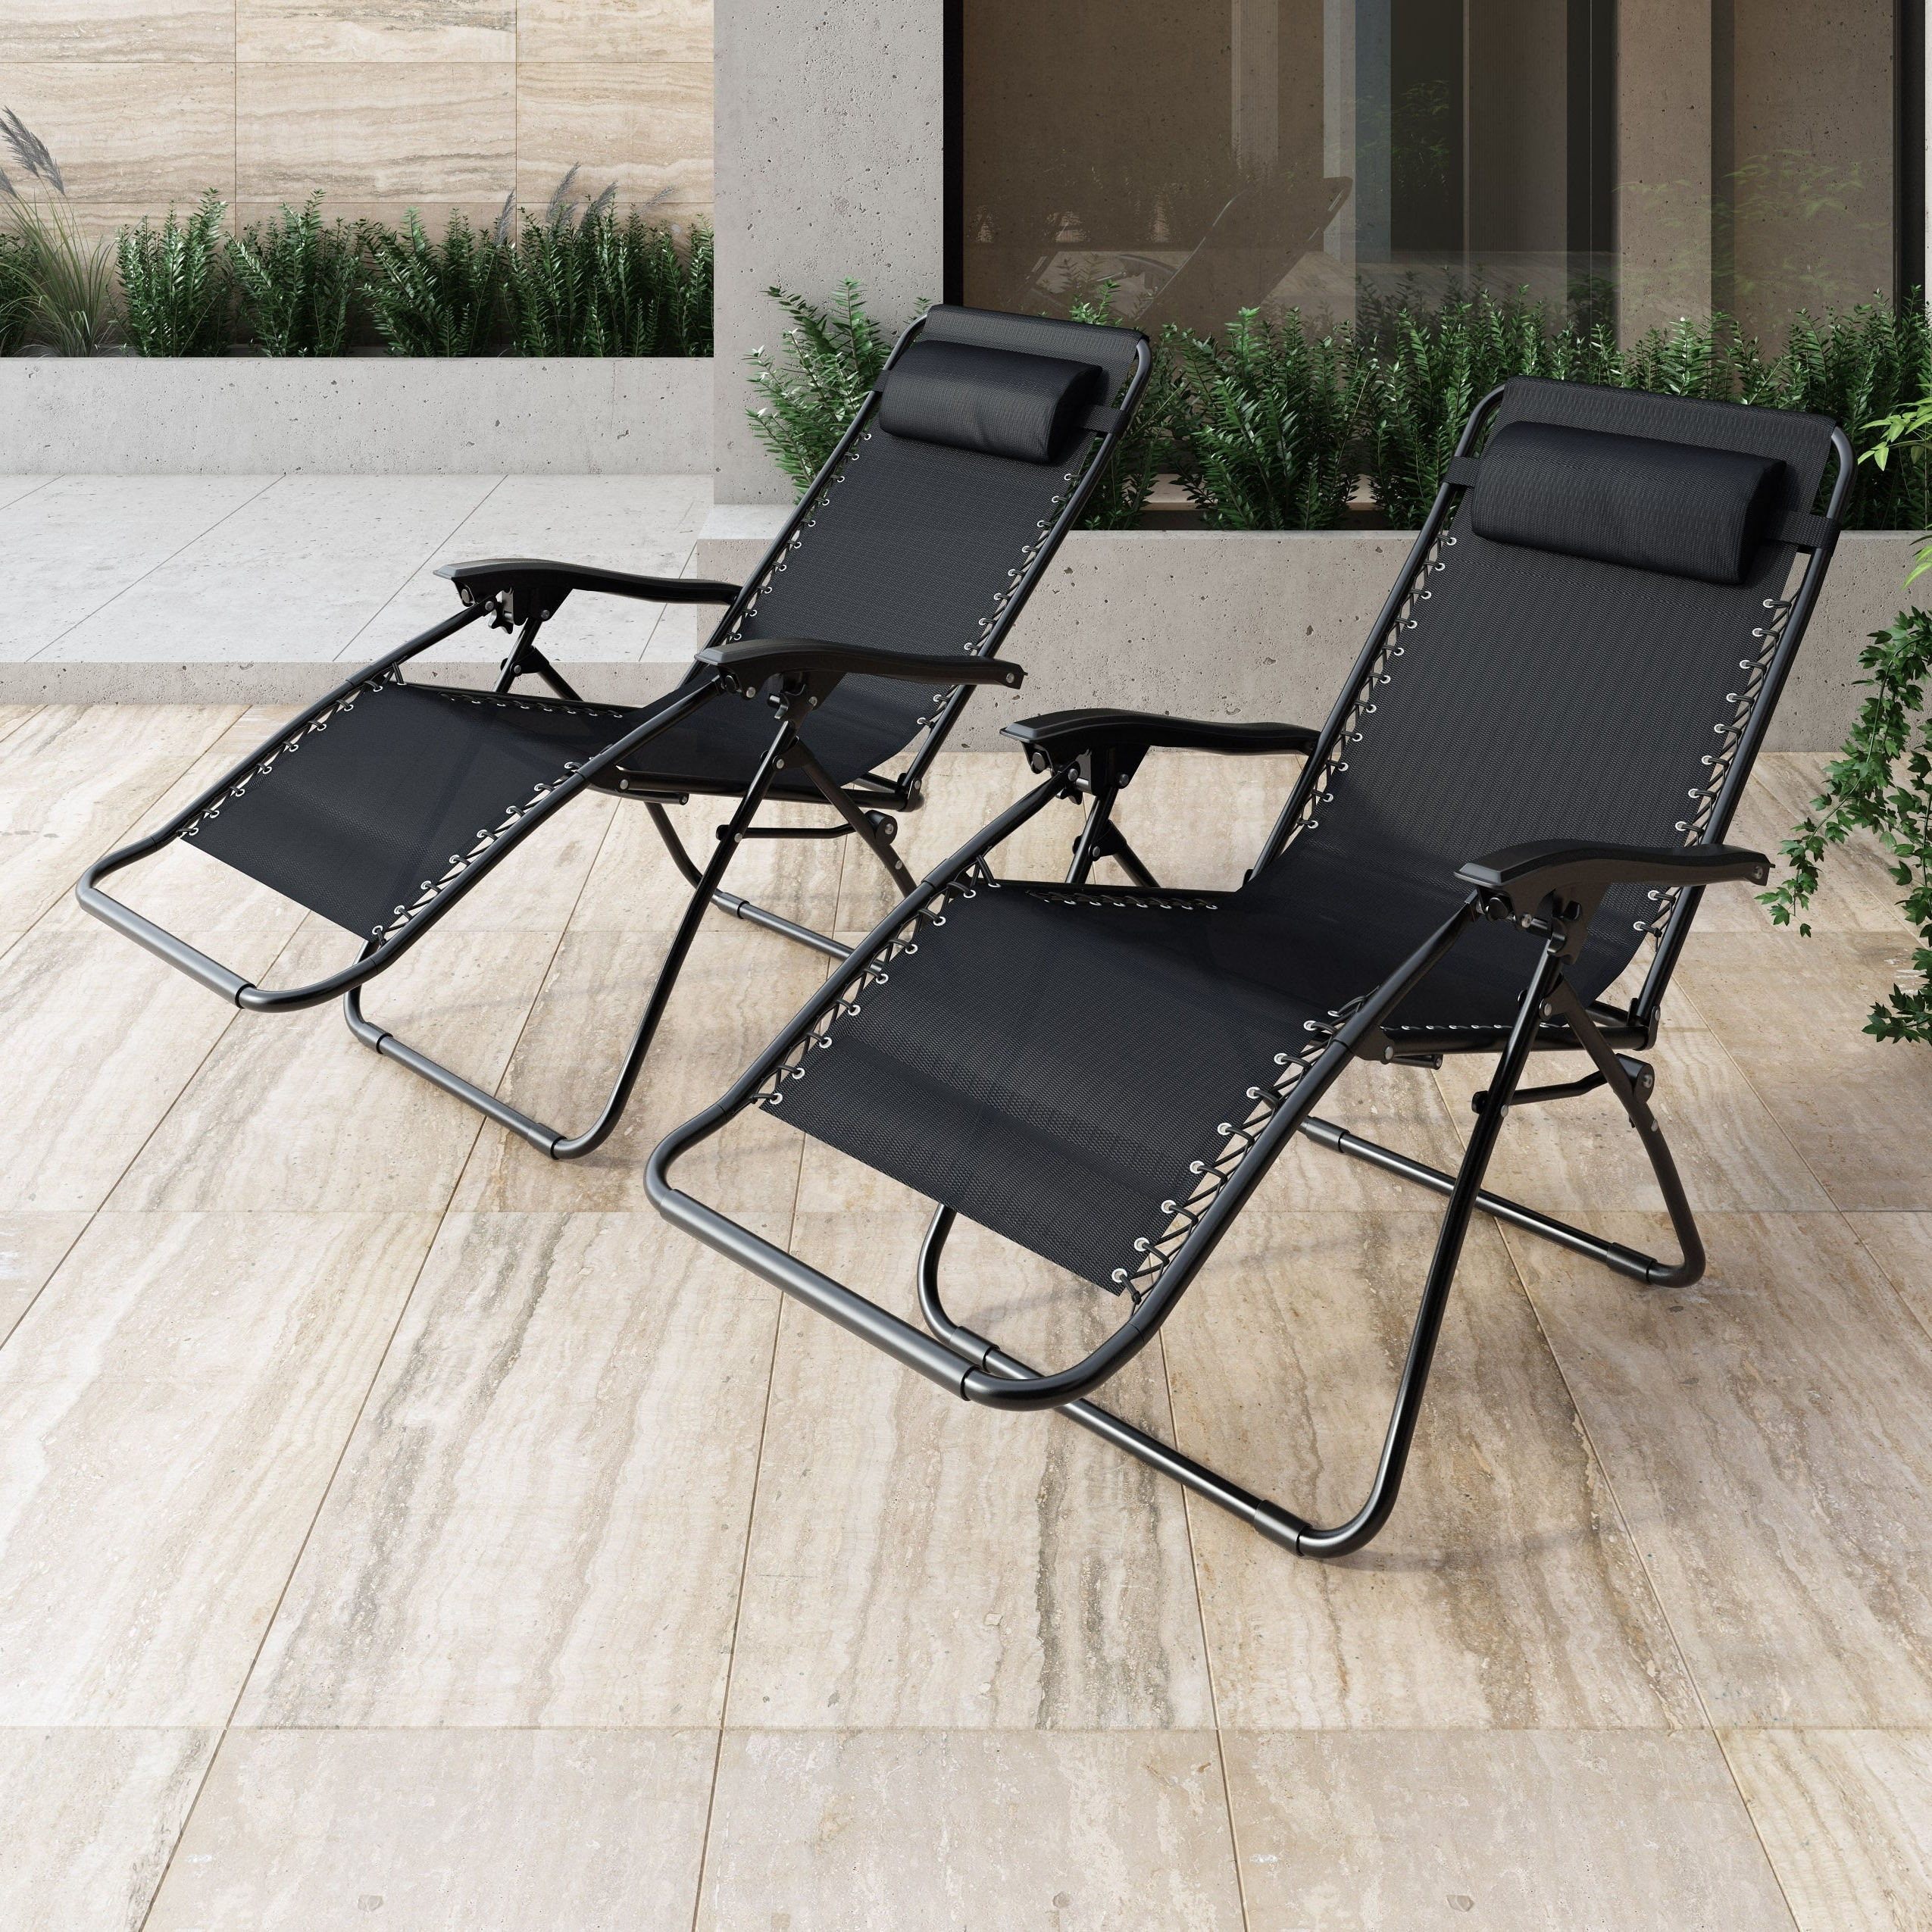 Corliving Riverside Textured Loungers In Latest Corliving Riverside Textured Zero Gravity Lounger, Set Of (View 3 of 25)